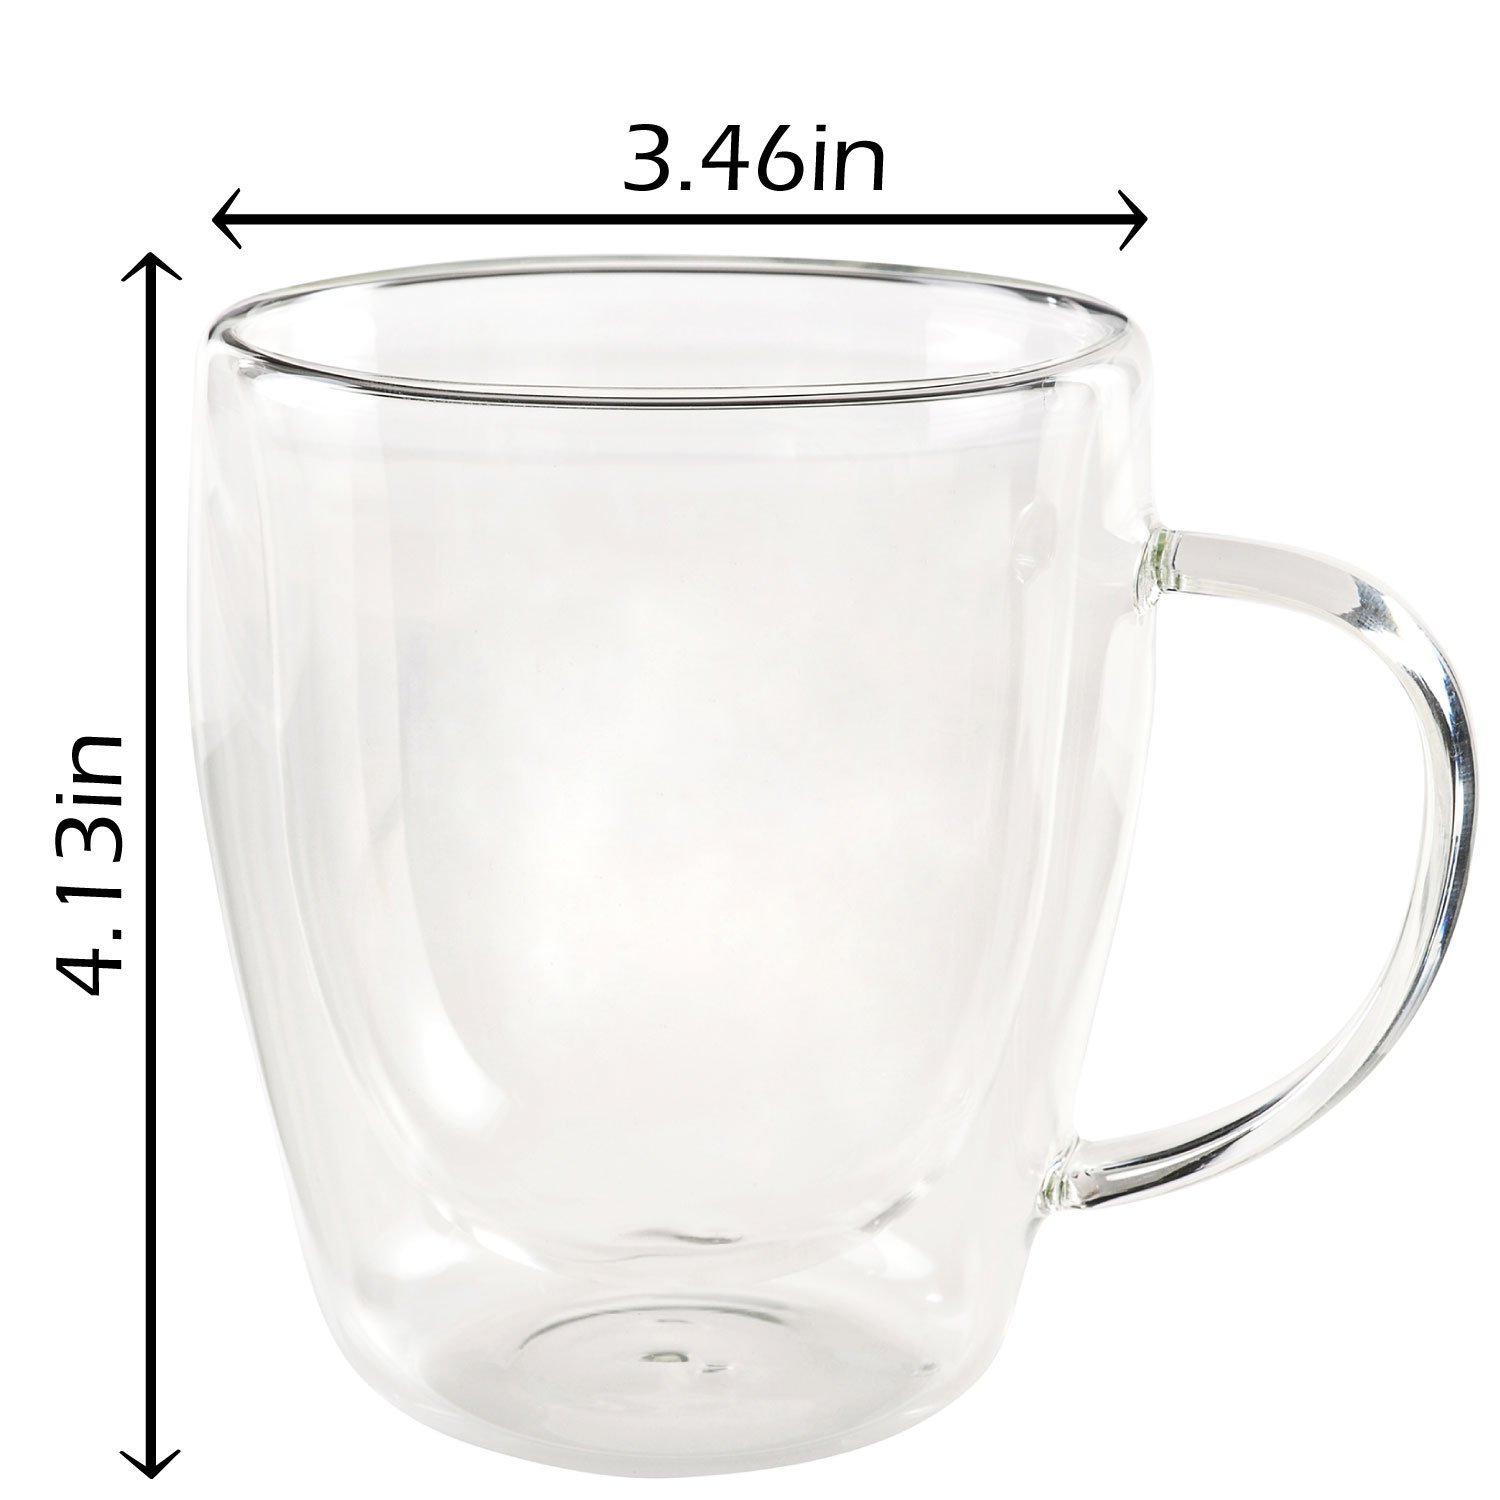 Jecobi Indulge, Set Of 2 Mugs, Strong Double Walled Insulated drinking glasses with handle, 10 oz Glass Coffee Cups Dishwasher. Microwave, freezer with NO RISK. by JECOBI (Image #5)